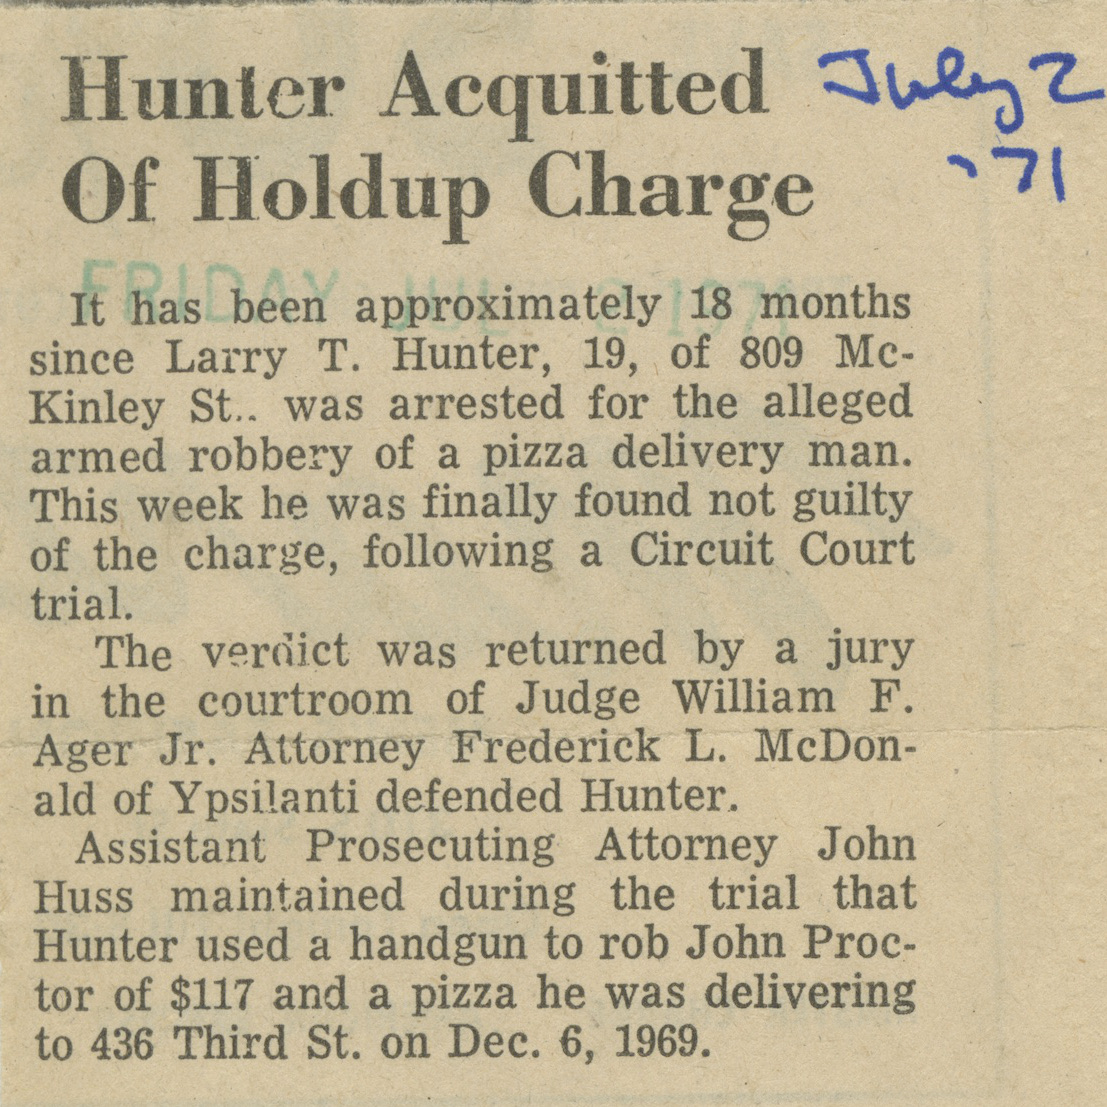 Hunter Acquitted Of Holdup Charge image